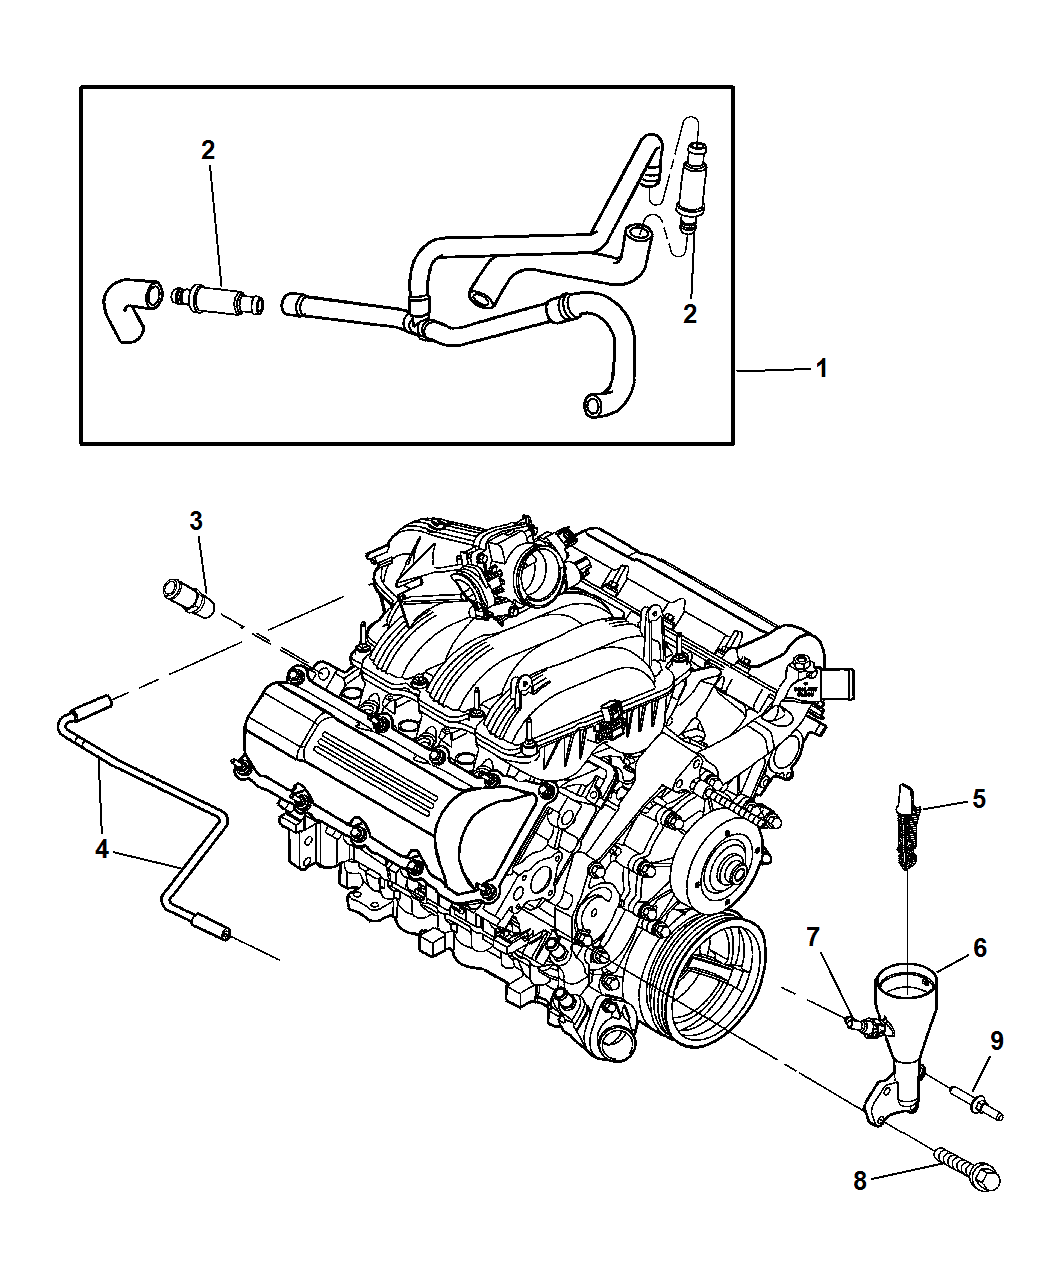 2005 Jeep Liberty Limited Engine Coolant Diagram - wiring diagram  ground-dialect - ground-dialect.albergoinsicilia.it | 2005 Jeep Liberty Limited Engine Coolant Diagram |  | ground-dialect.albergoinsicilia.it